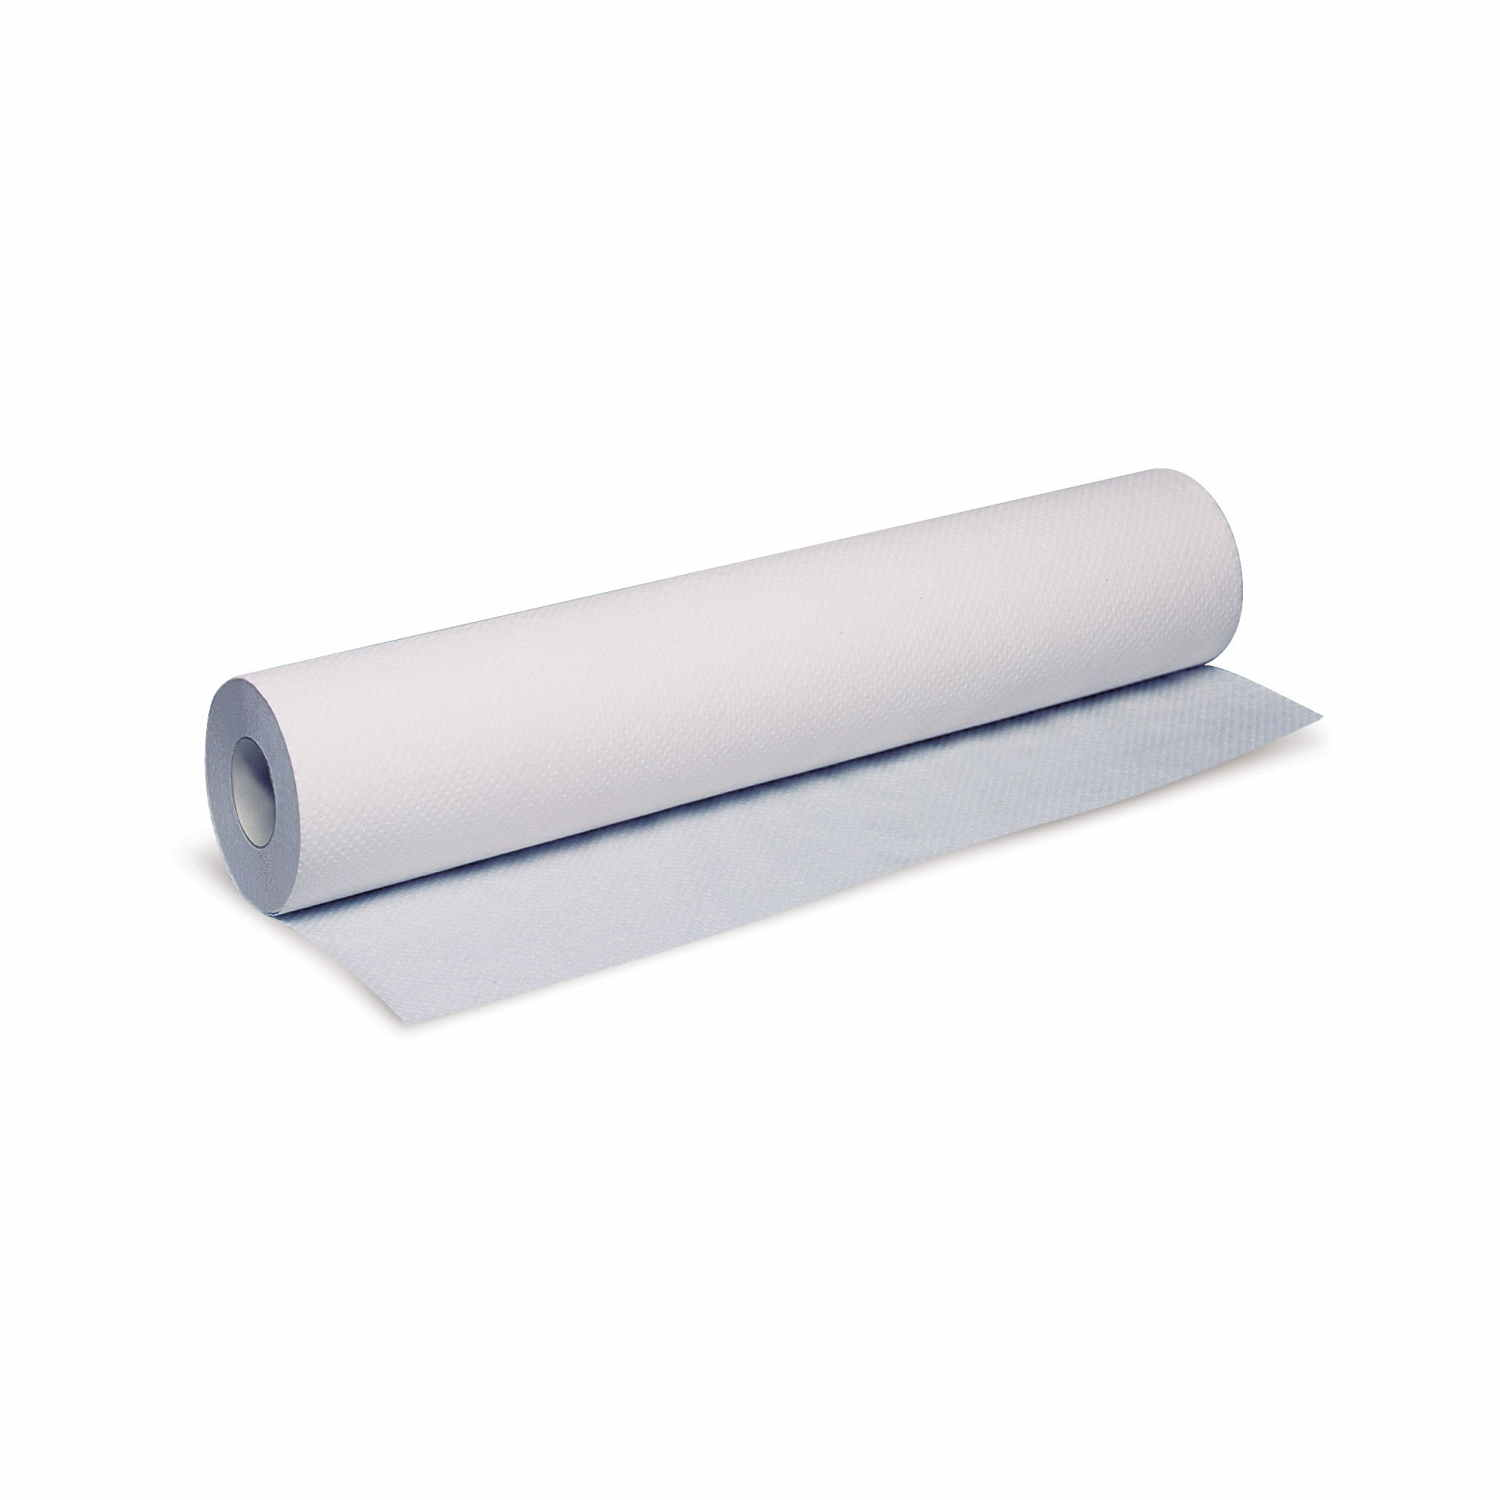 Medical Paper Roll Two Ply 75mx60cm